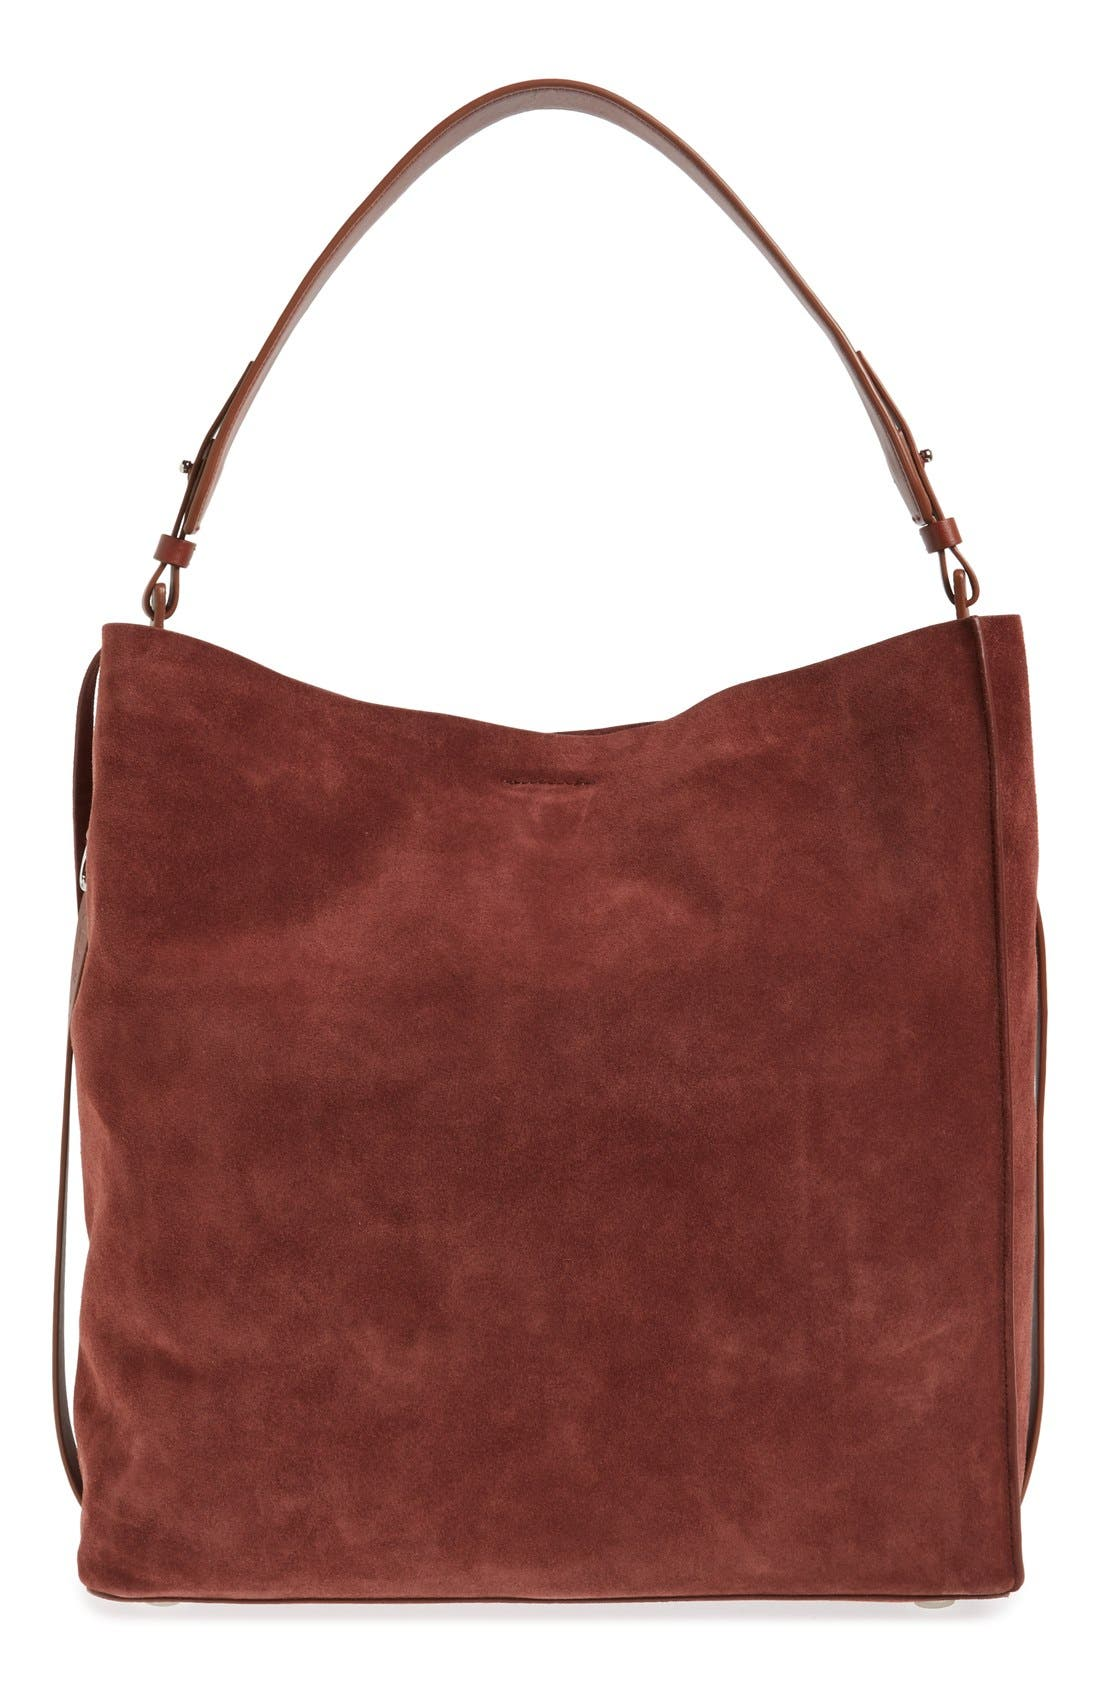 'Paradise - North/South' Suede Tote,                             Main thumbnail 1, color,                             Brandy/ Brick Brown